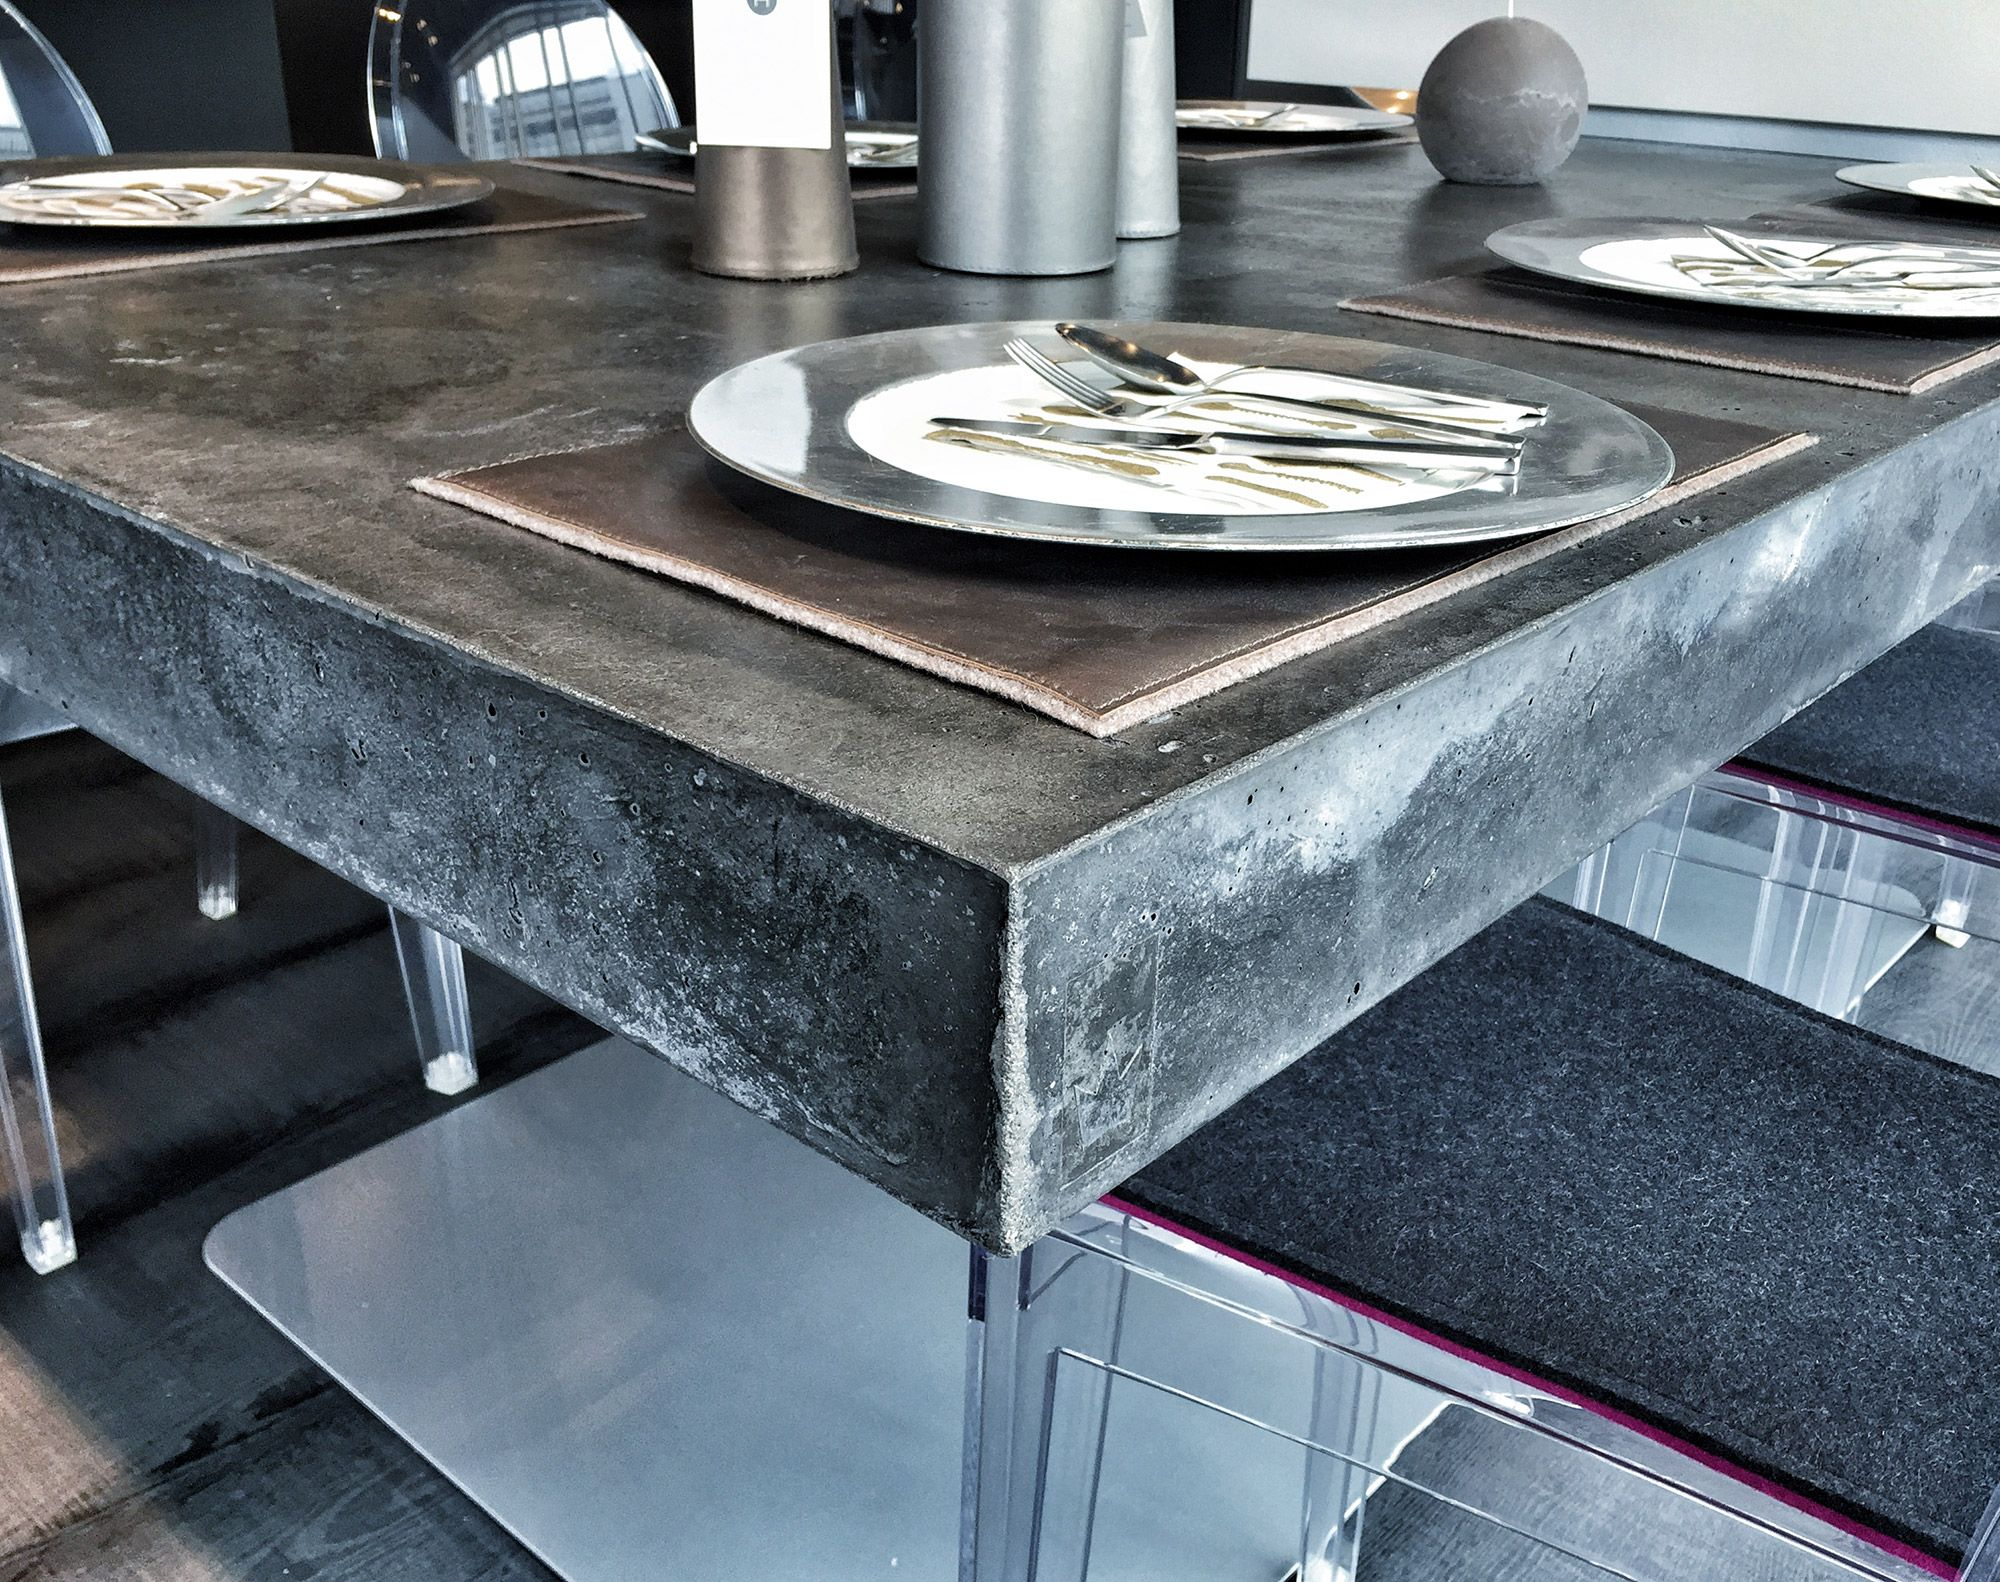 Dining table made of concrete. Designed and manufactured by Koenigsgrau.  See more on: instagram.com/koenigsgrau   #concretetable #concretedesign #concreteinterior #concreteproducts #handcrafted #madeingermany